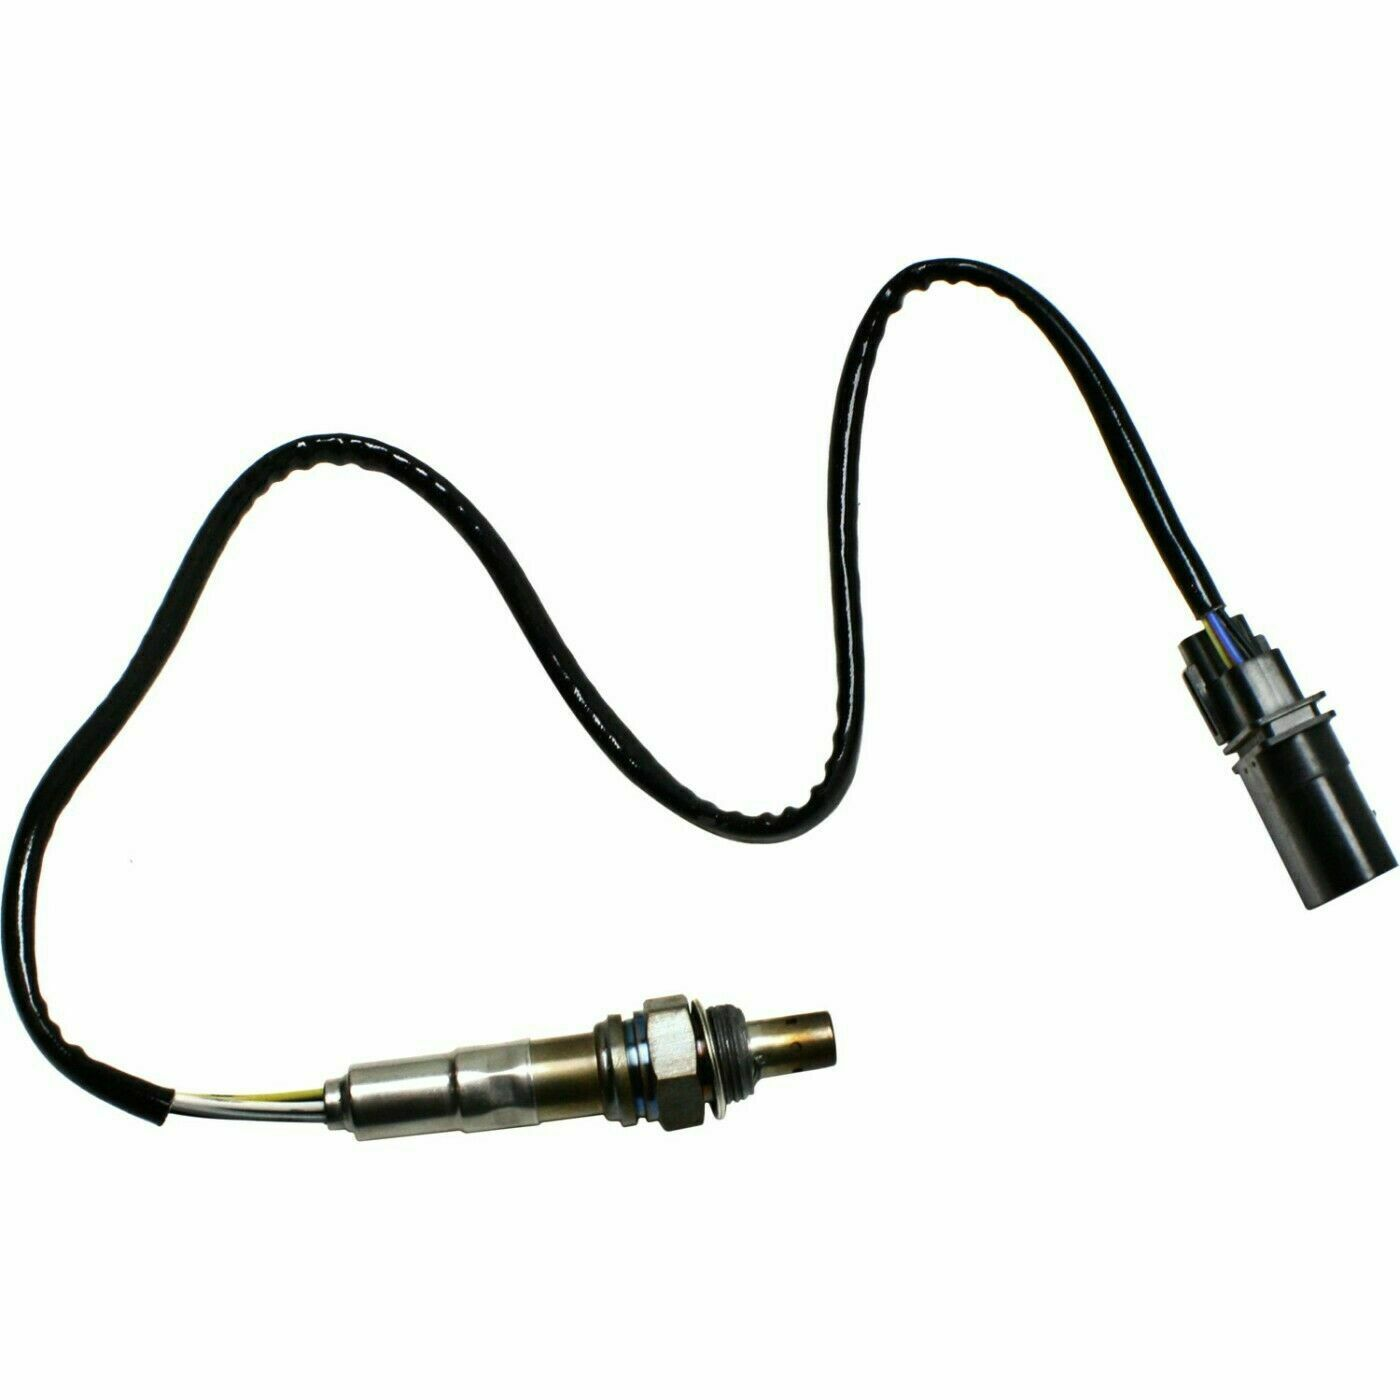 Upstream Oxygen Sensor O2 For 2005-2009 Audi A4 Quattro 3